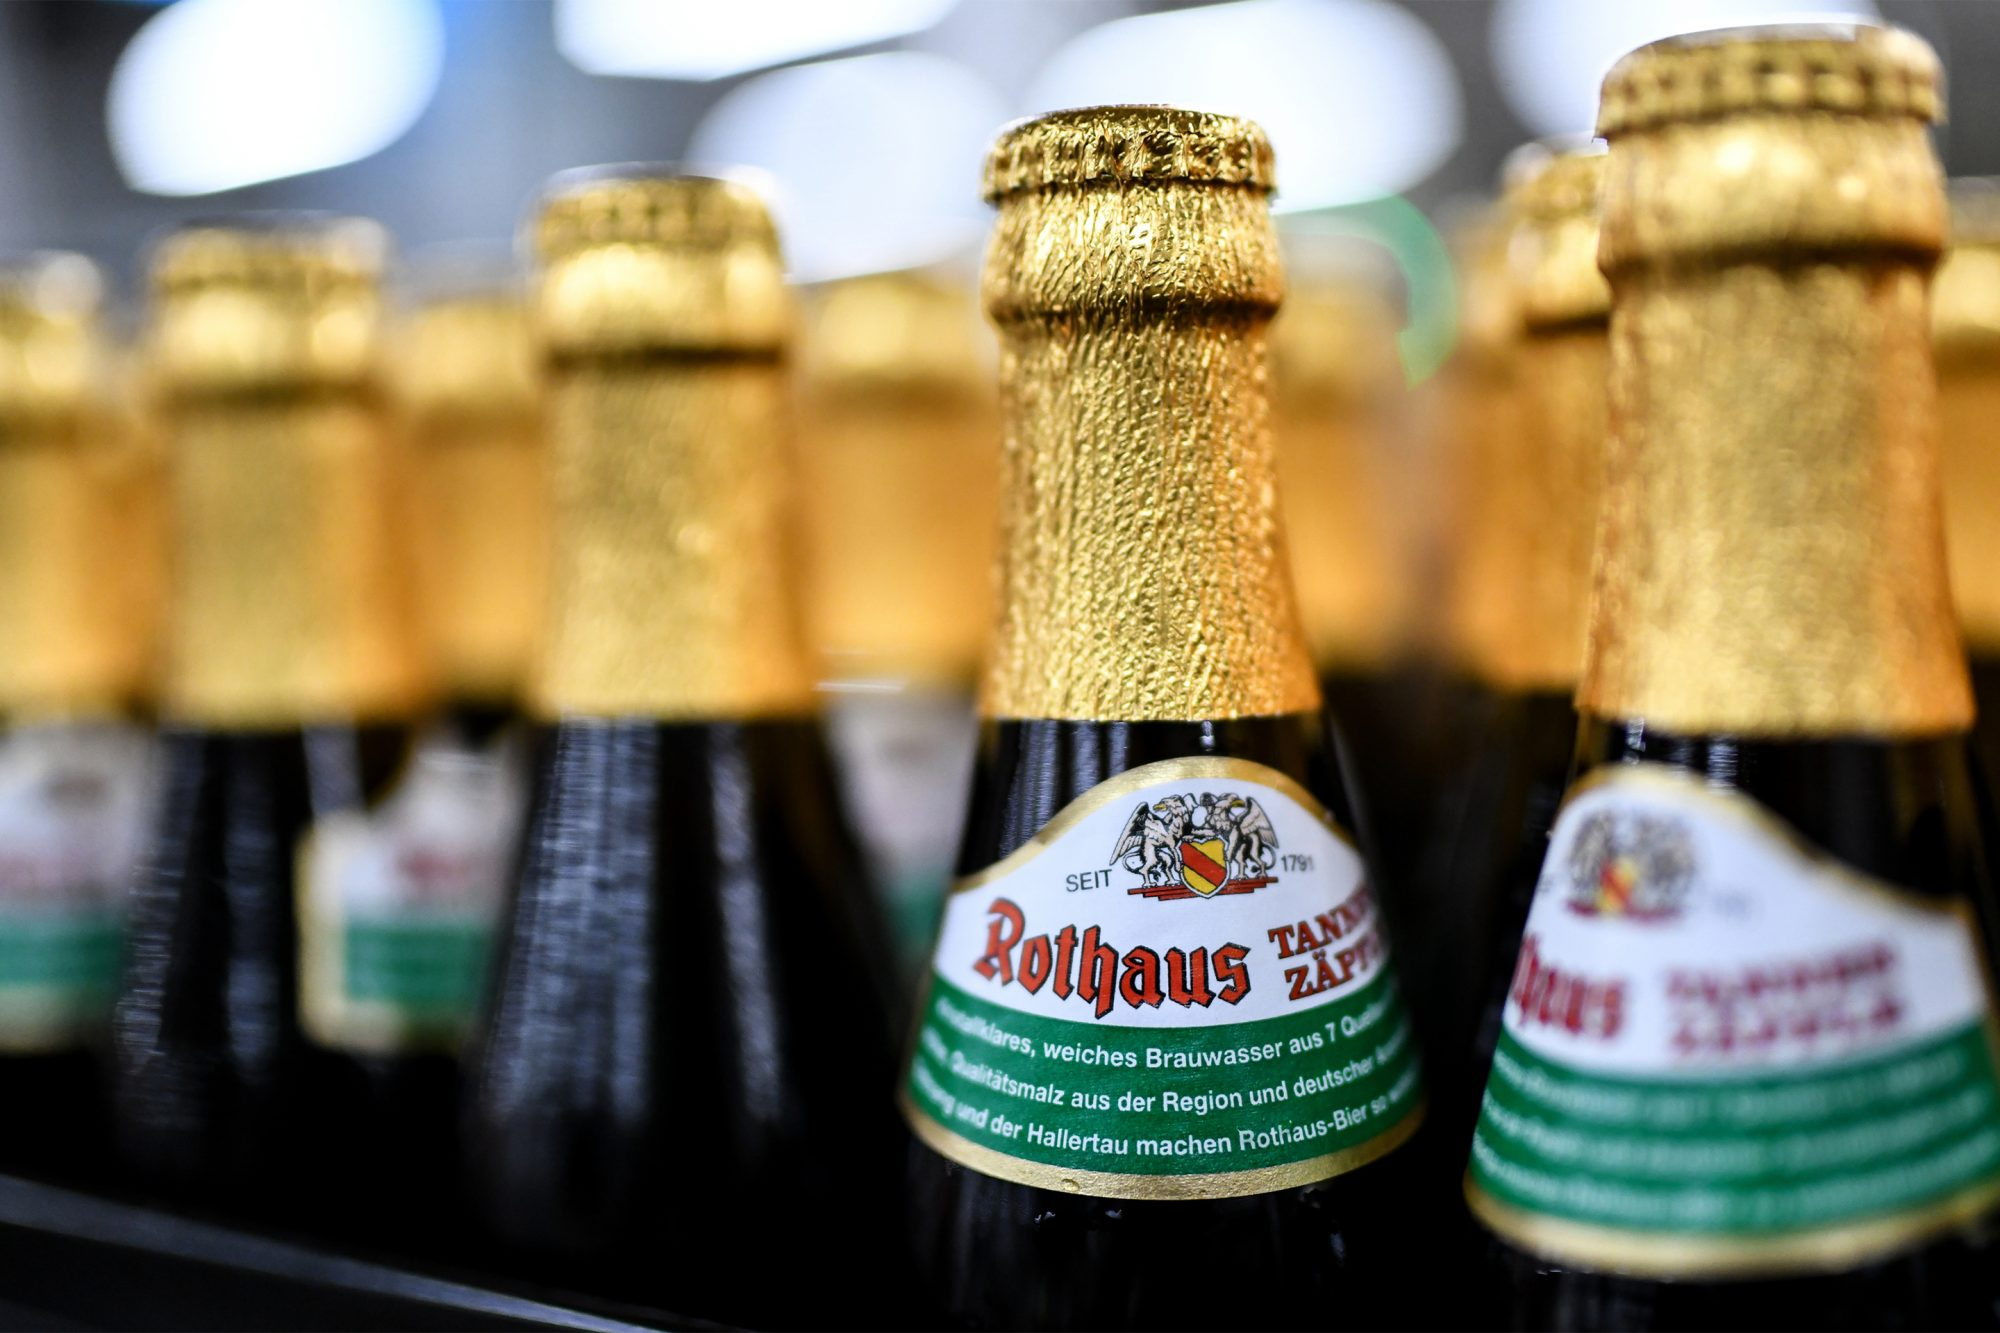 Germany's Almost Out of Beer Bottles